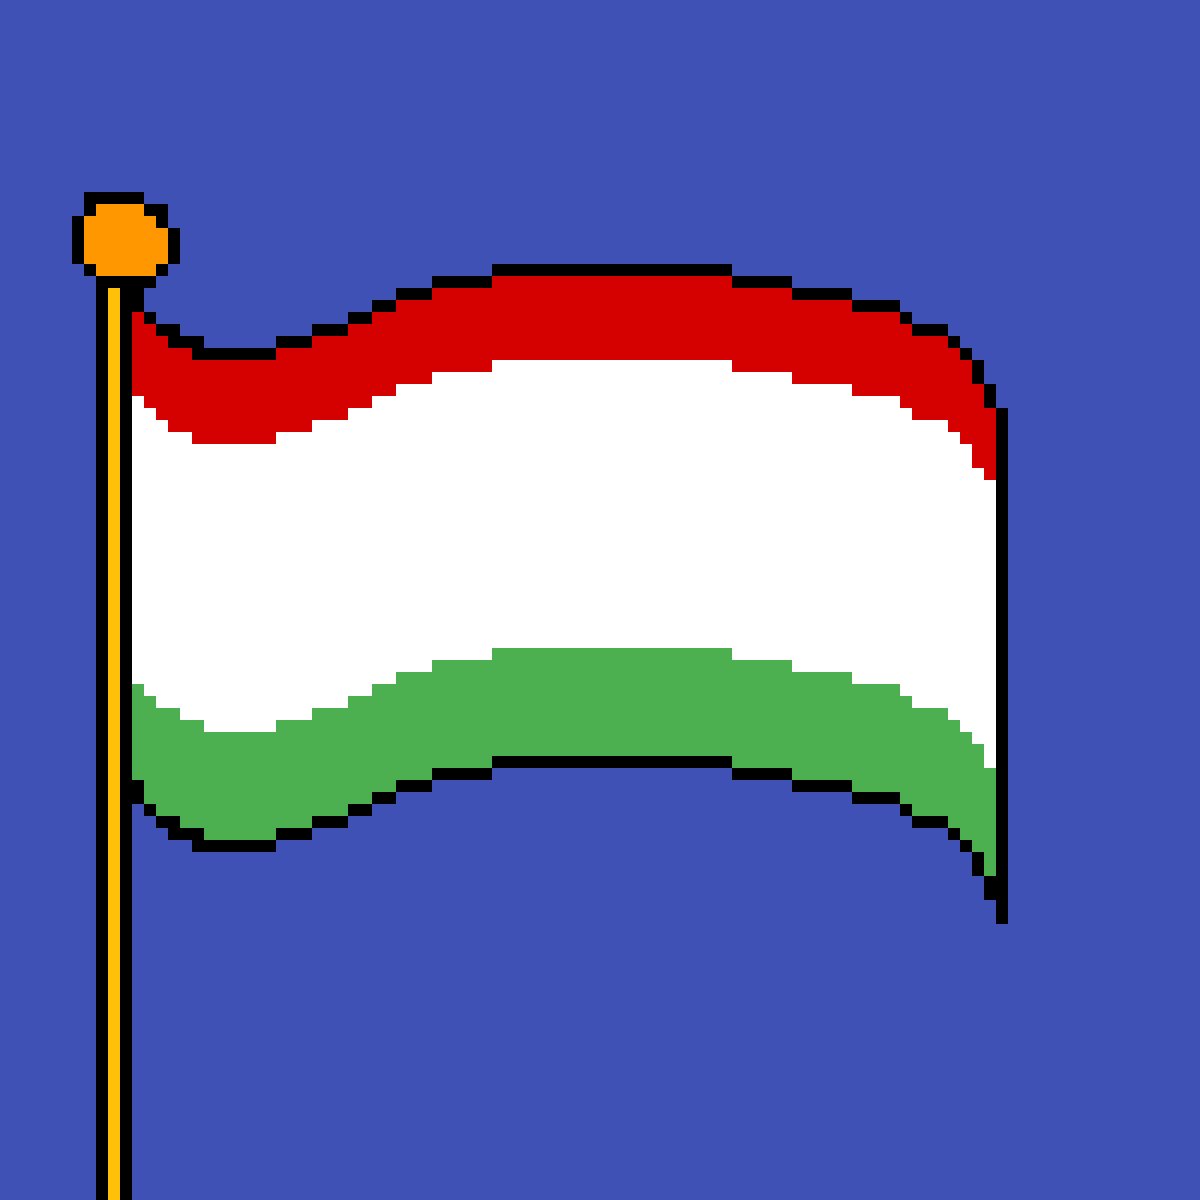 The flag of Hungary by poison-darts317